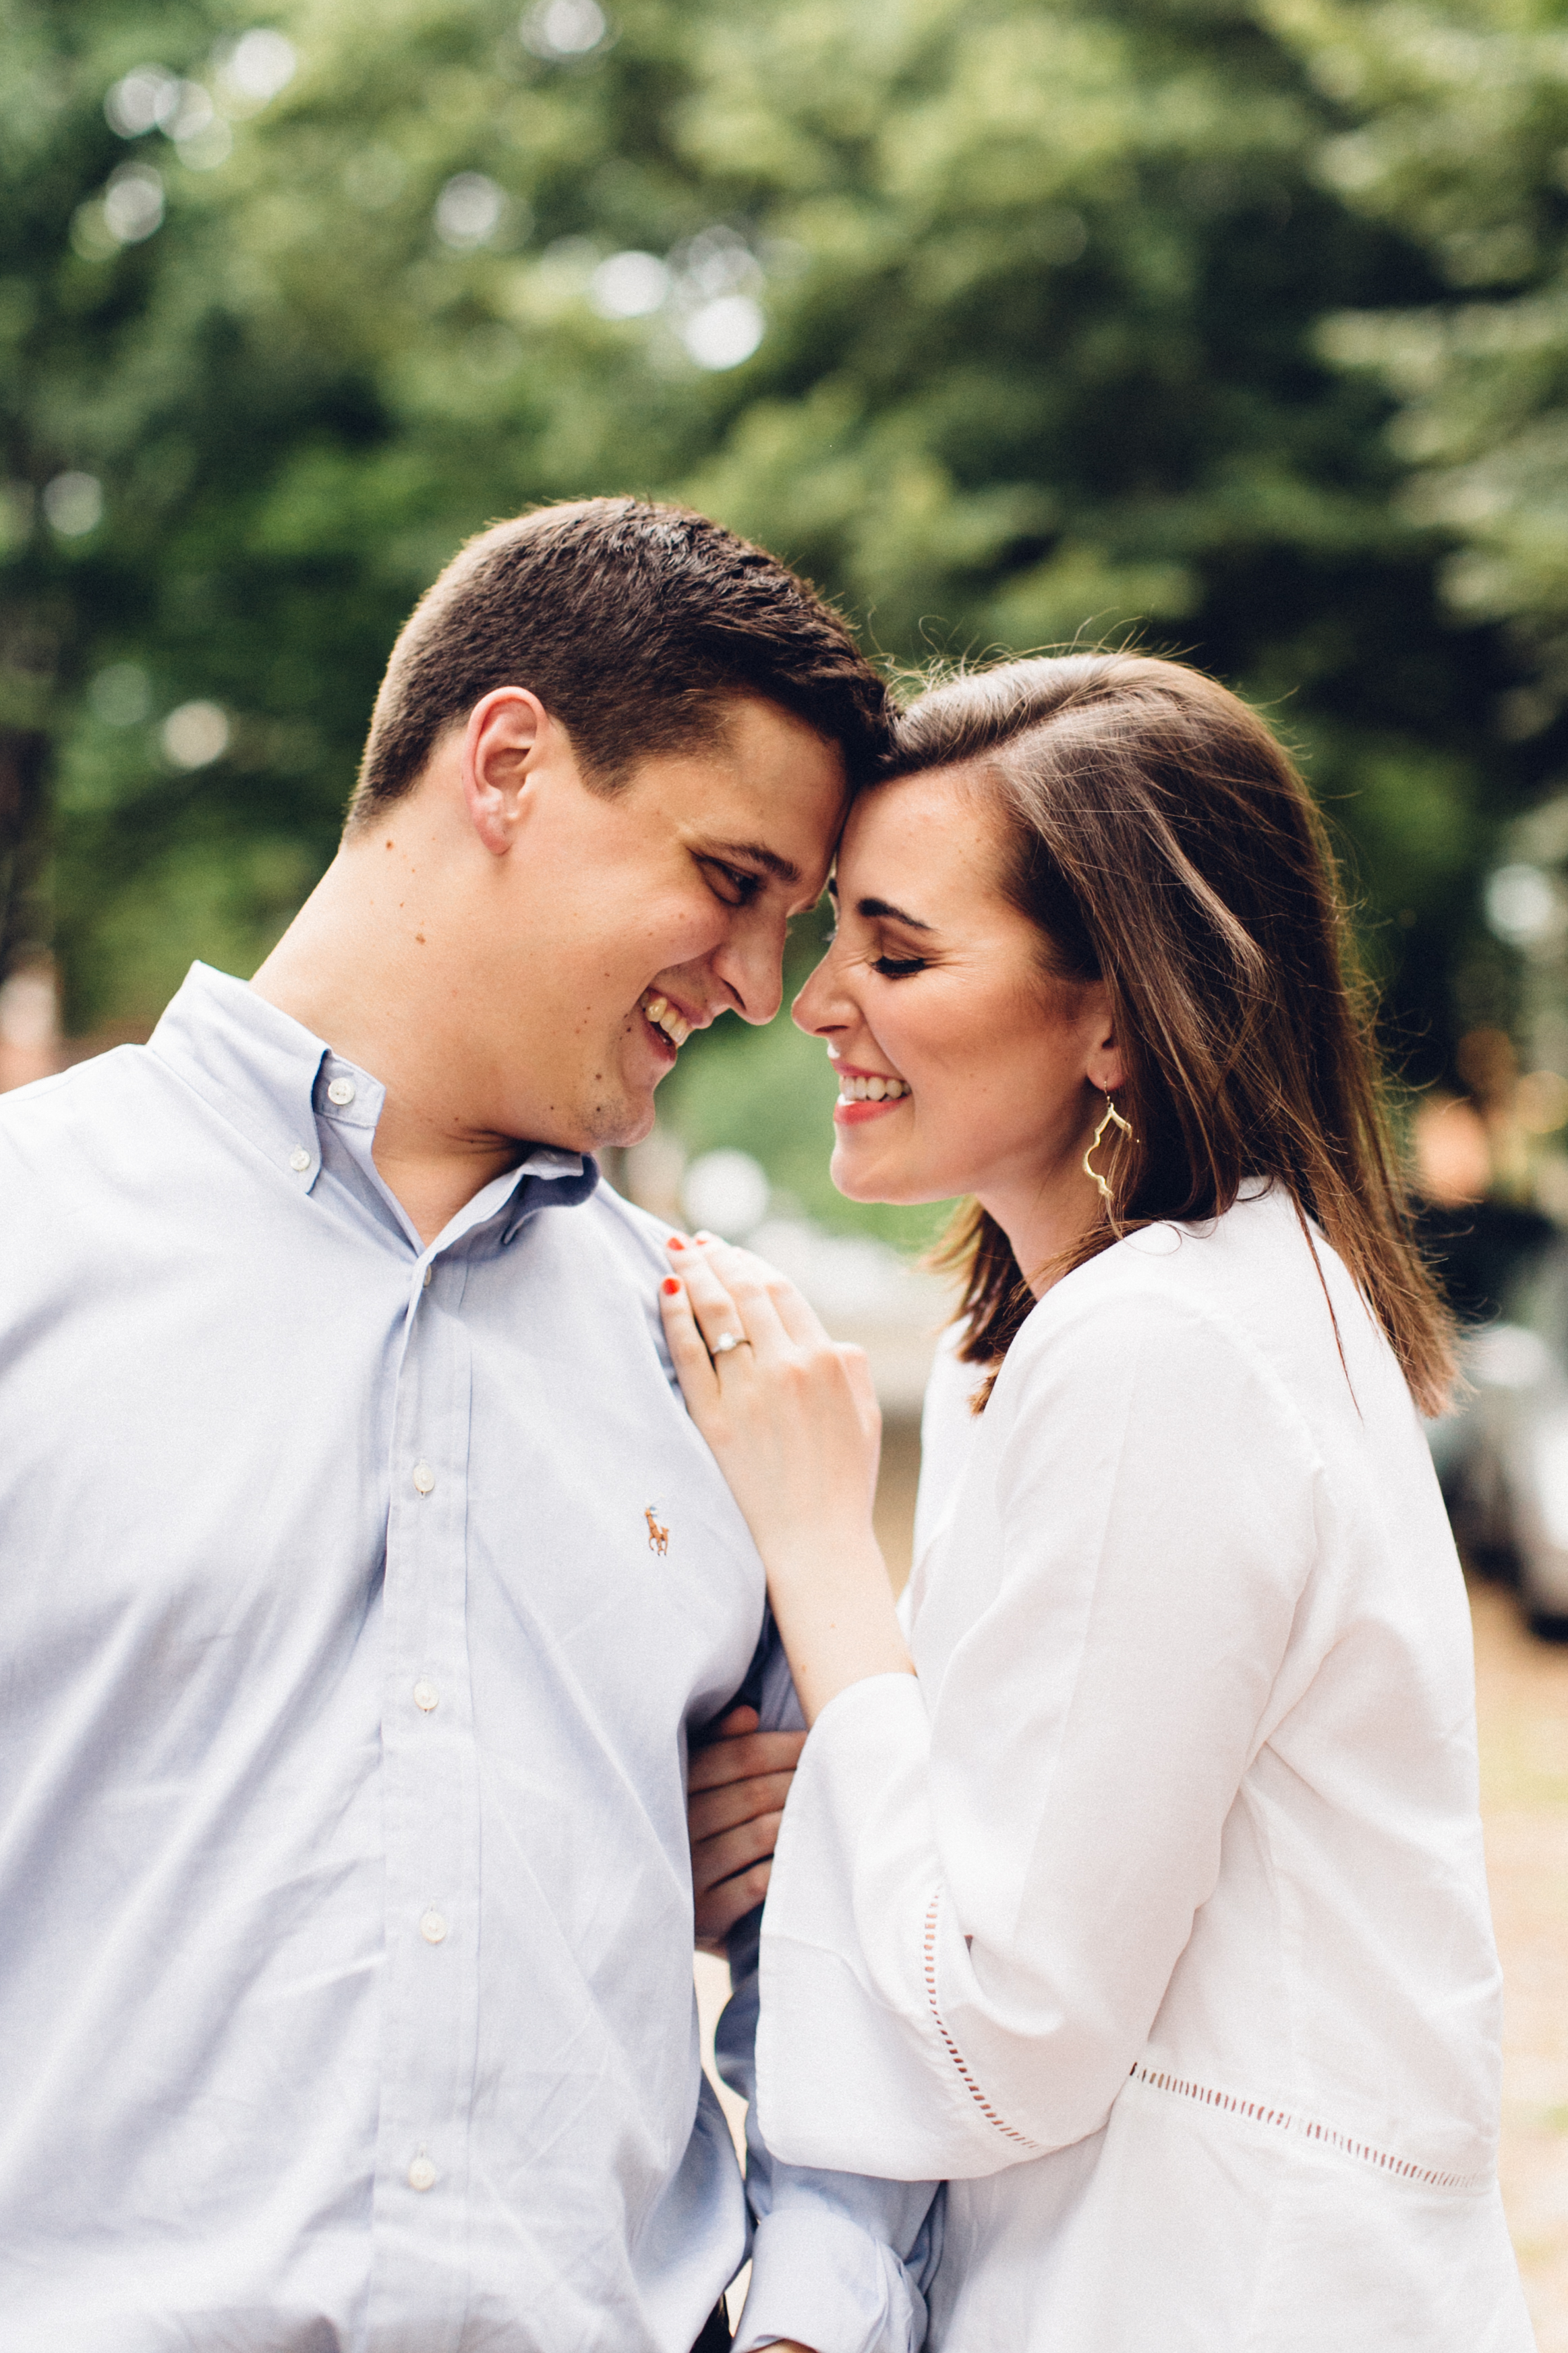 Old Town Alexandria Engagement Photo by Maria Vicencio Photography